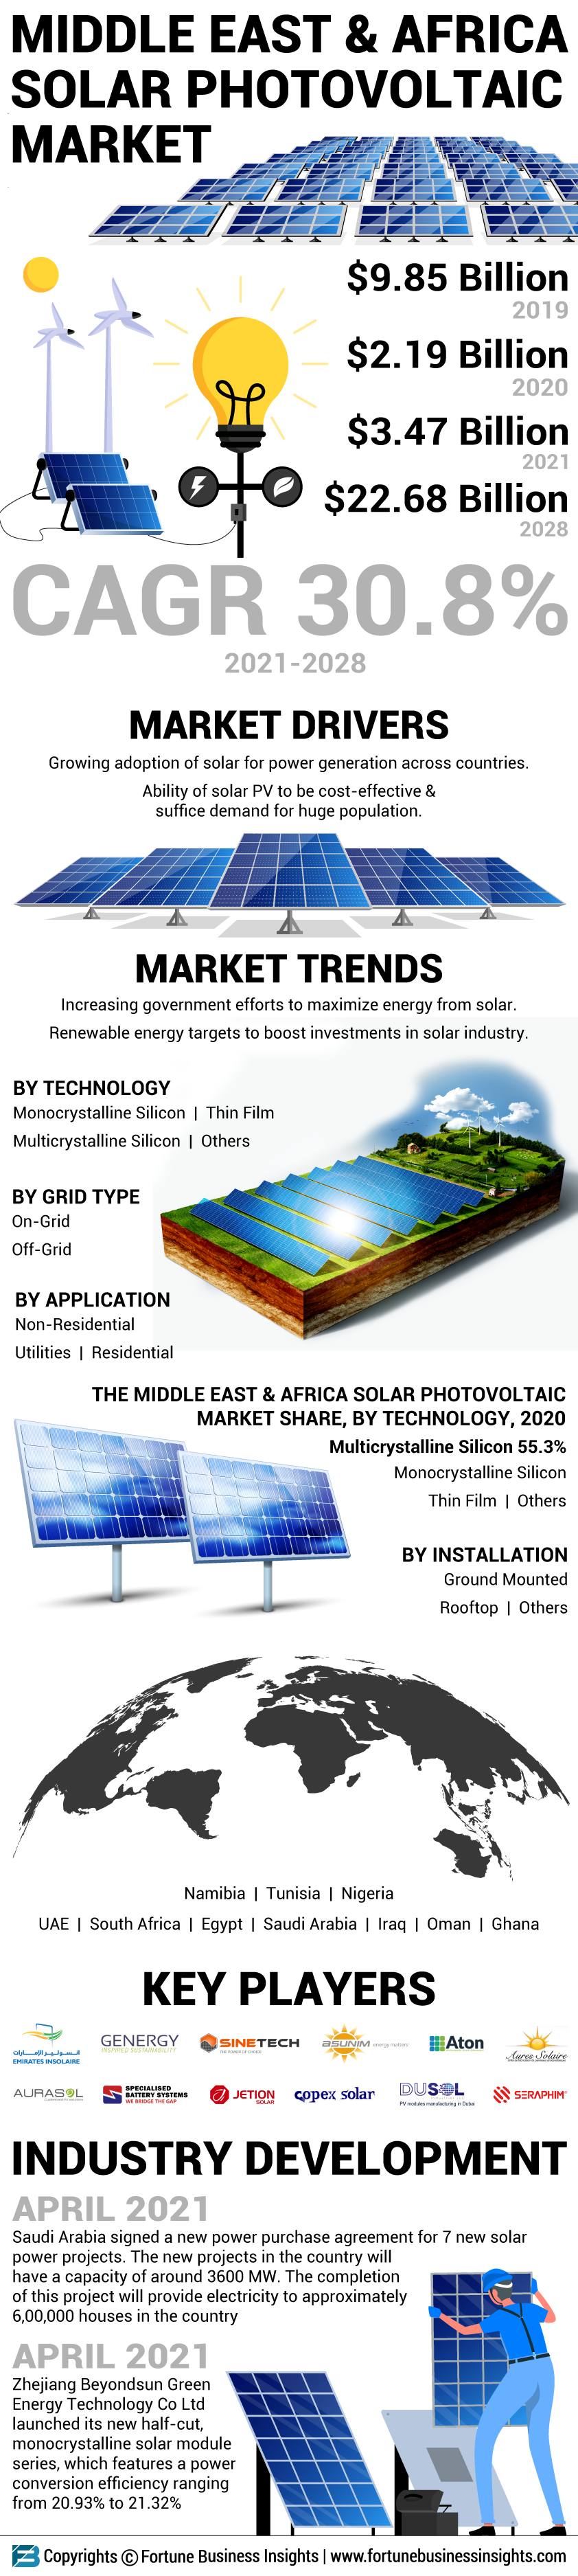 Middle East & Africa Solar Photovoltaic (PV) Market